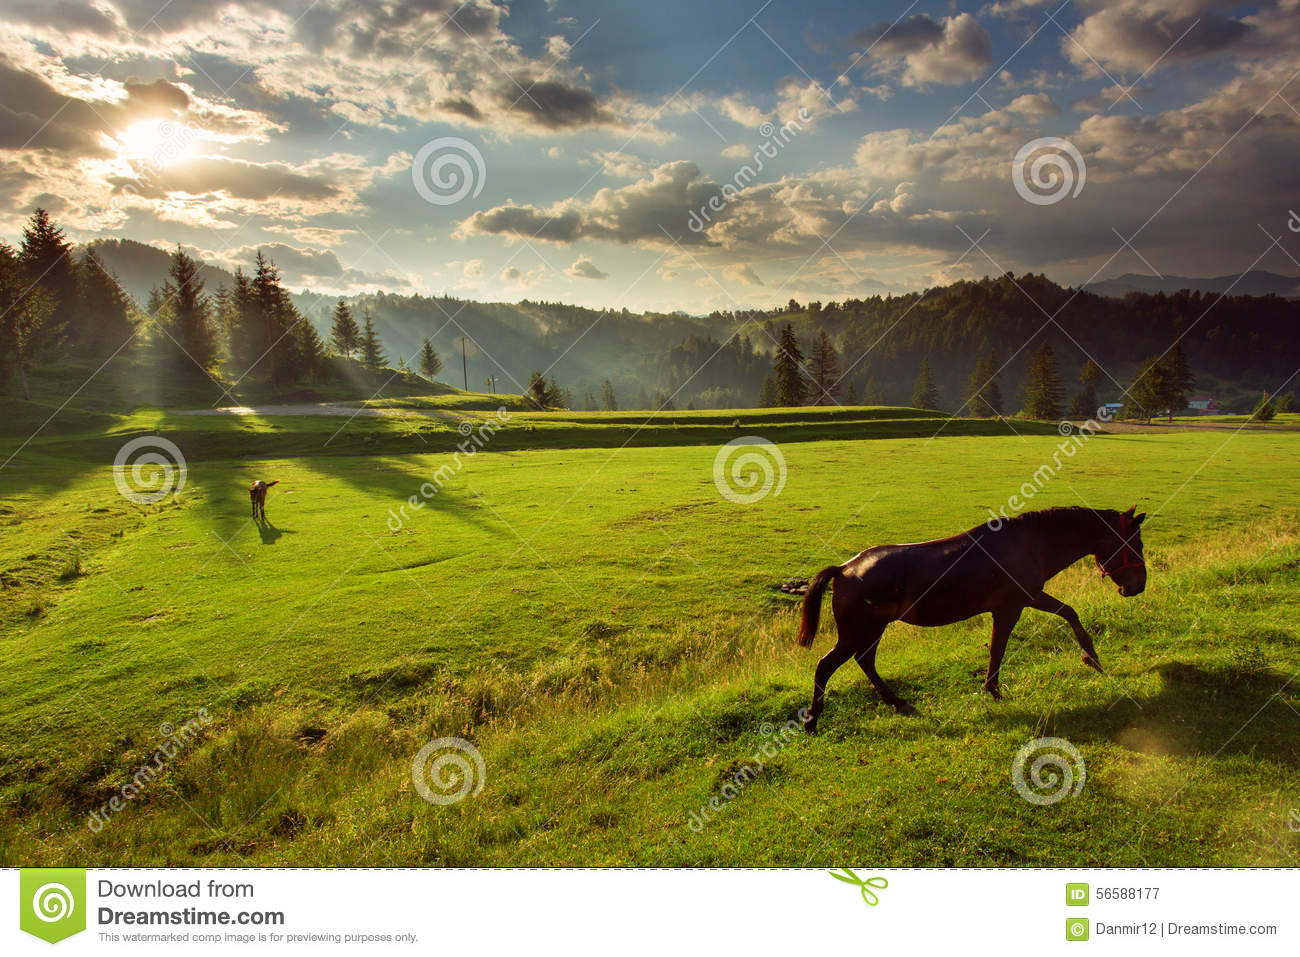 Horses in forest at sunset under cloudy sky.